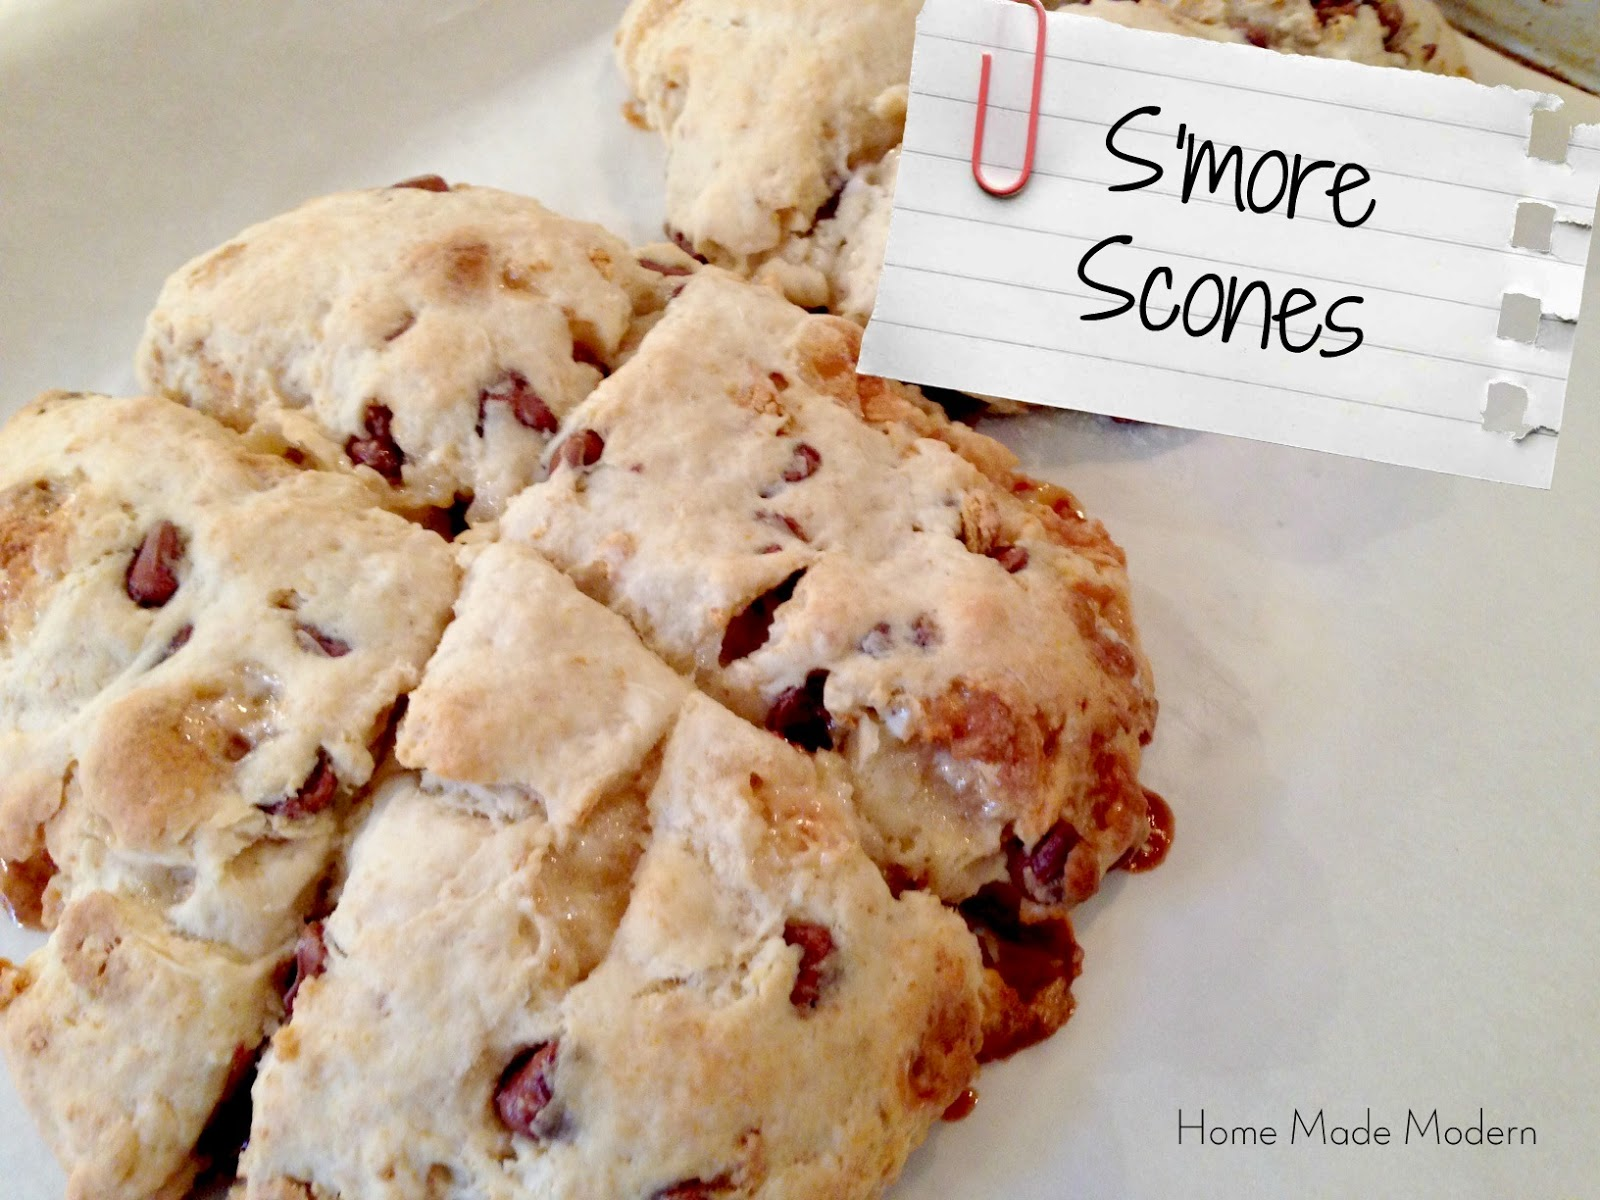 Home Made Modern: Recipe of the Week: S'more Scones